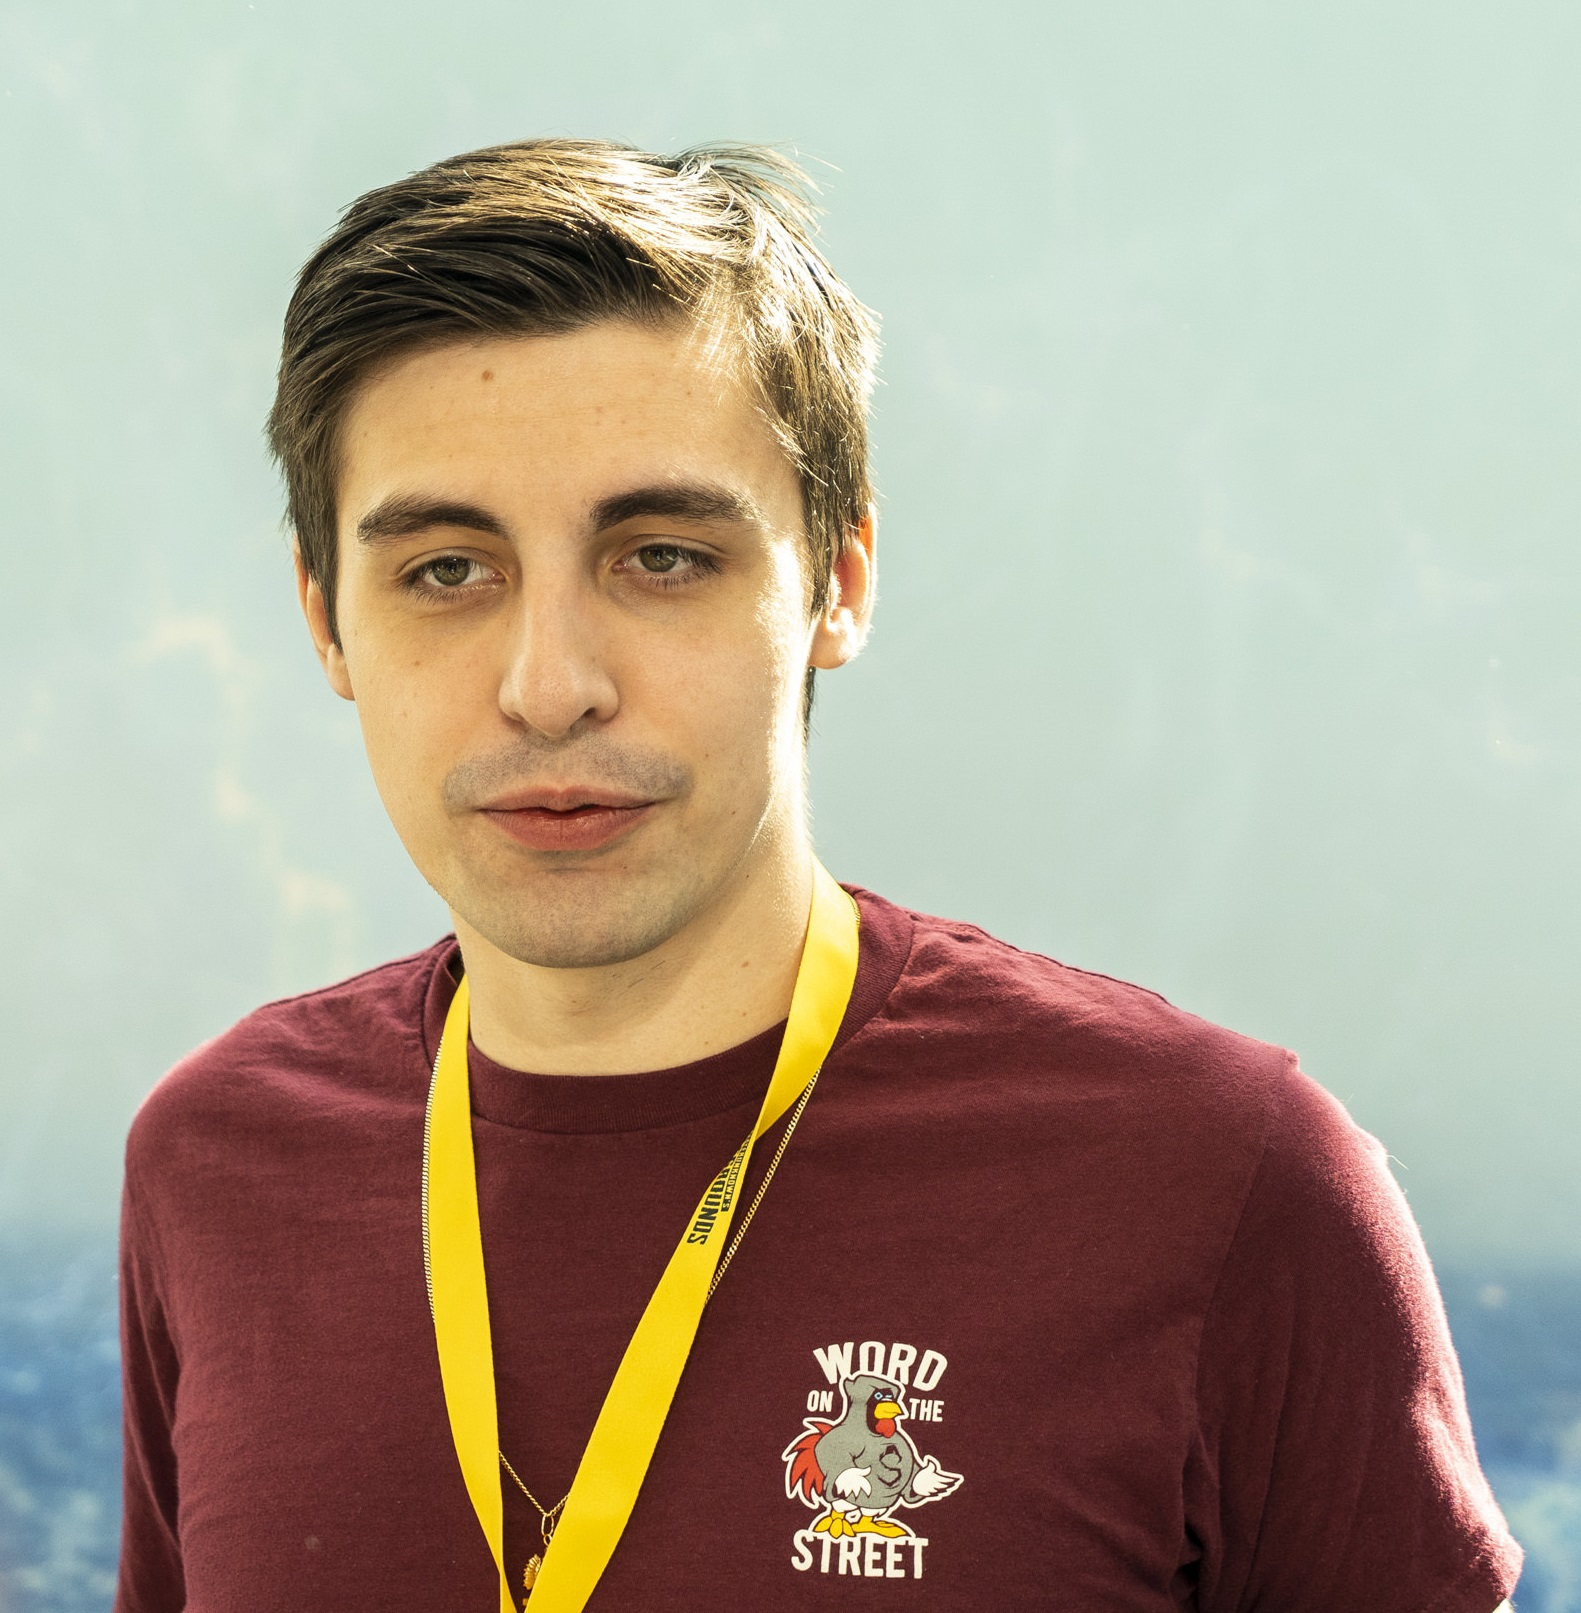 shroud (video game player) - Wikipedia